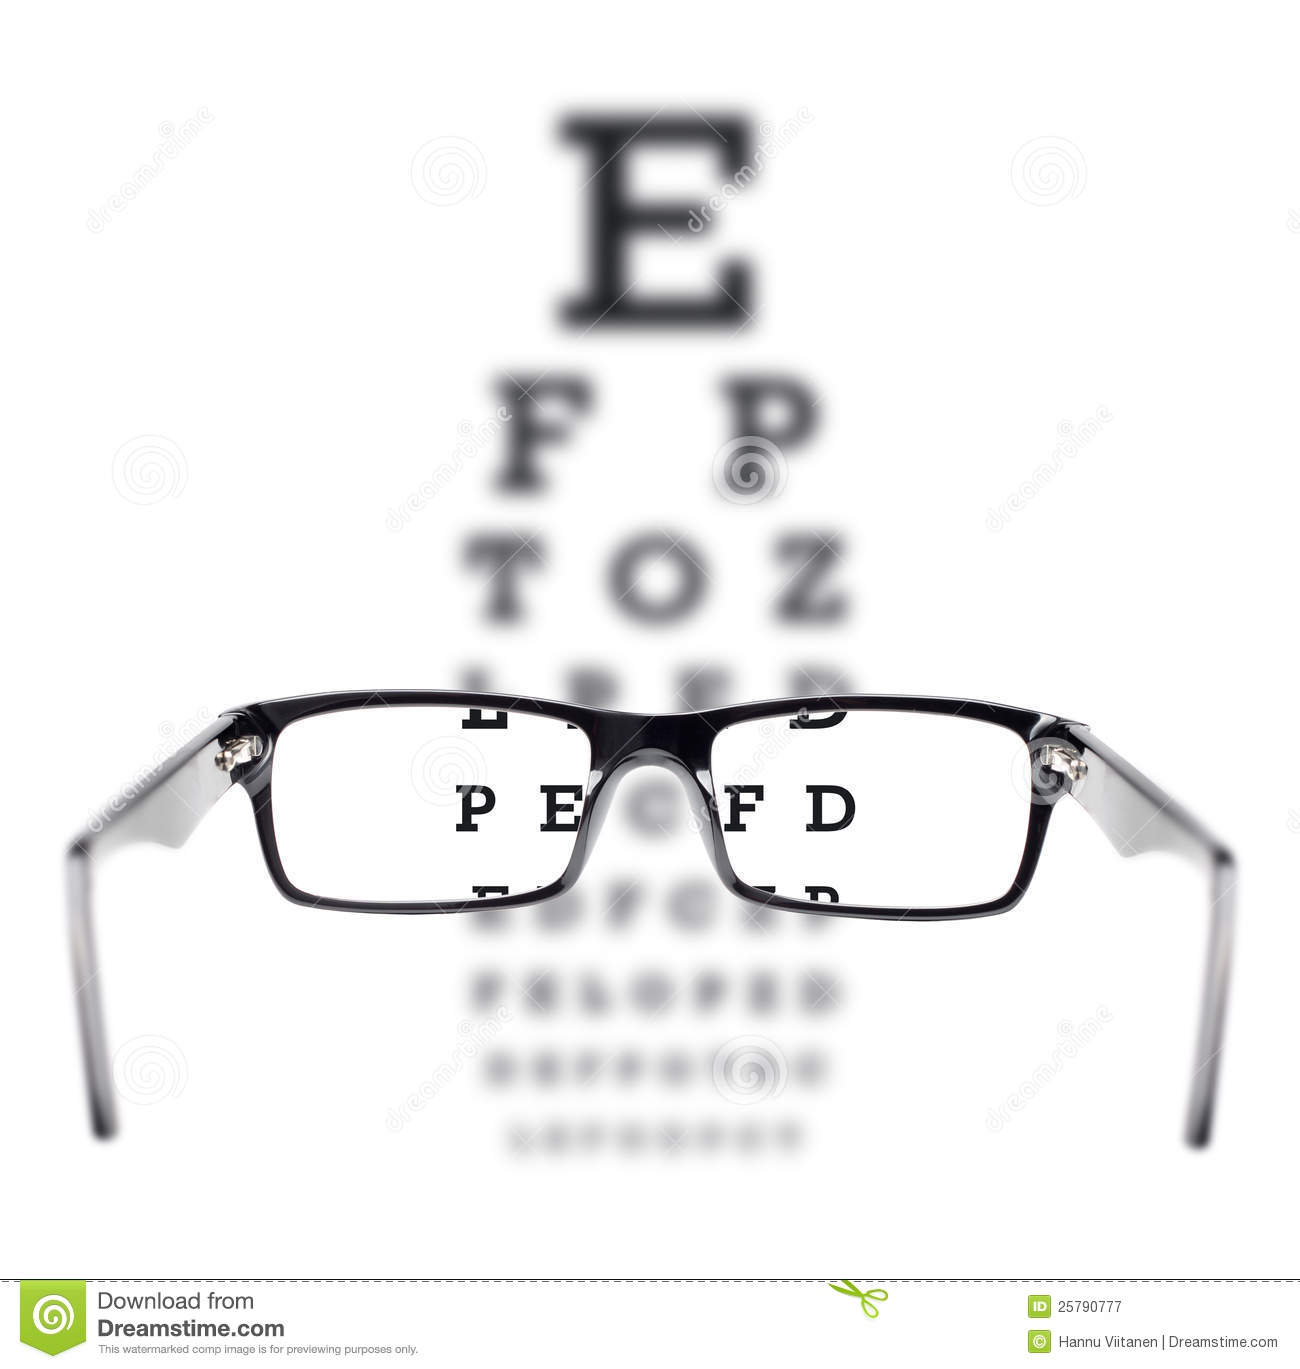 Royalty Free Stock Photography Sight Test Seen Eye Glasses Image25790777 besides Stock Illustration Running People Silhouettes Sport Run Active Fitness Exercise Athlete Vector Illustration Image60040431 further Stock Photography Doodle Stars Image26271532 moreover Stock Photos Arabic Ornament Vector Illustration Decoration Elements Design Image39726833 also 5542 Fred Perry Logo Download. on travel vector graphics